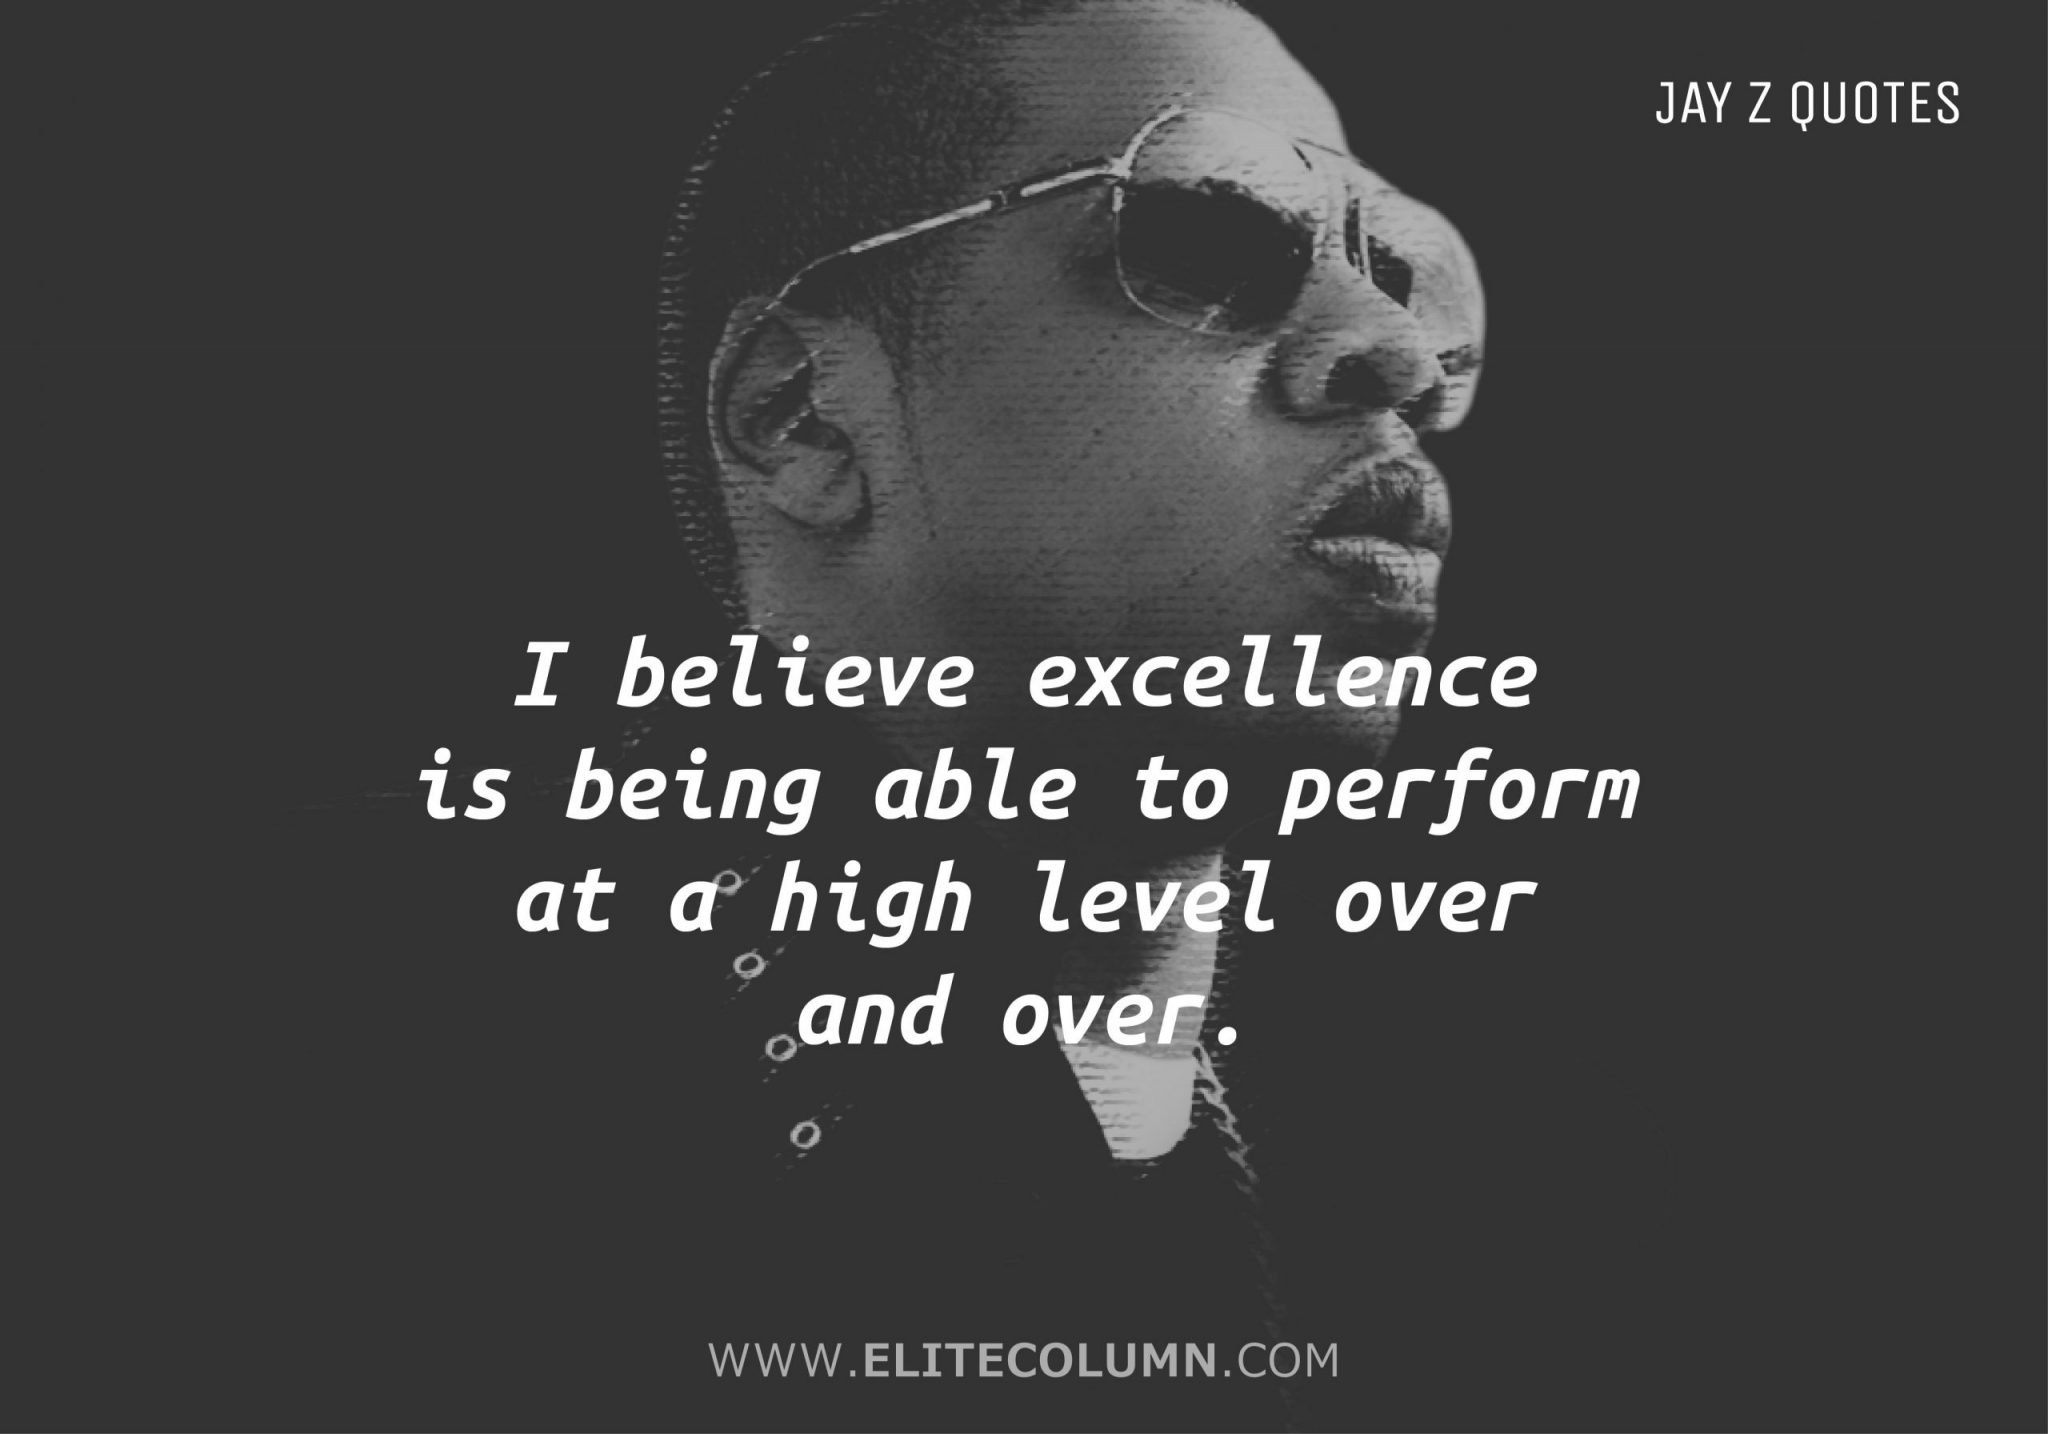 Jay Z Quotes (6)